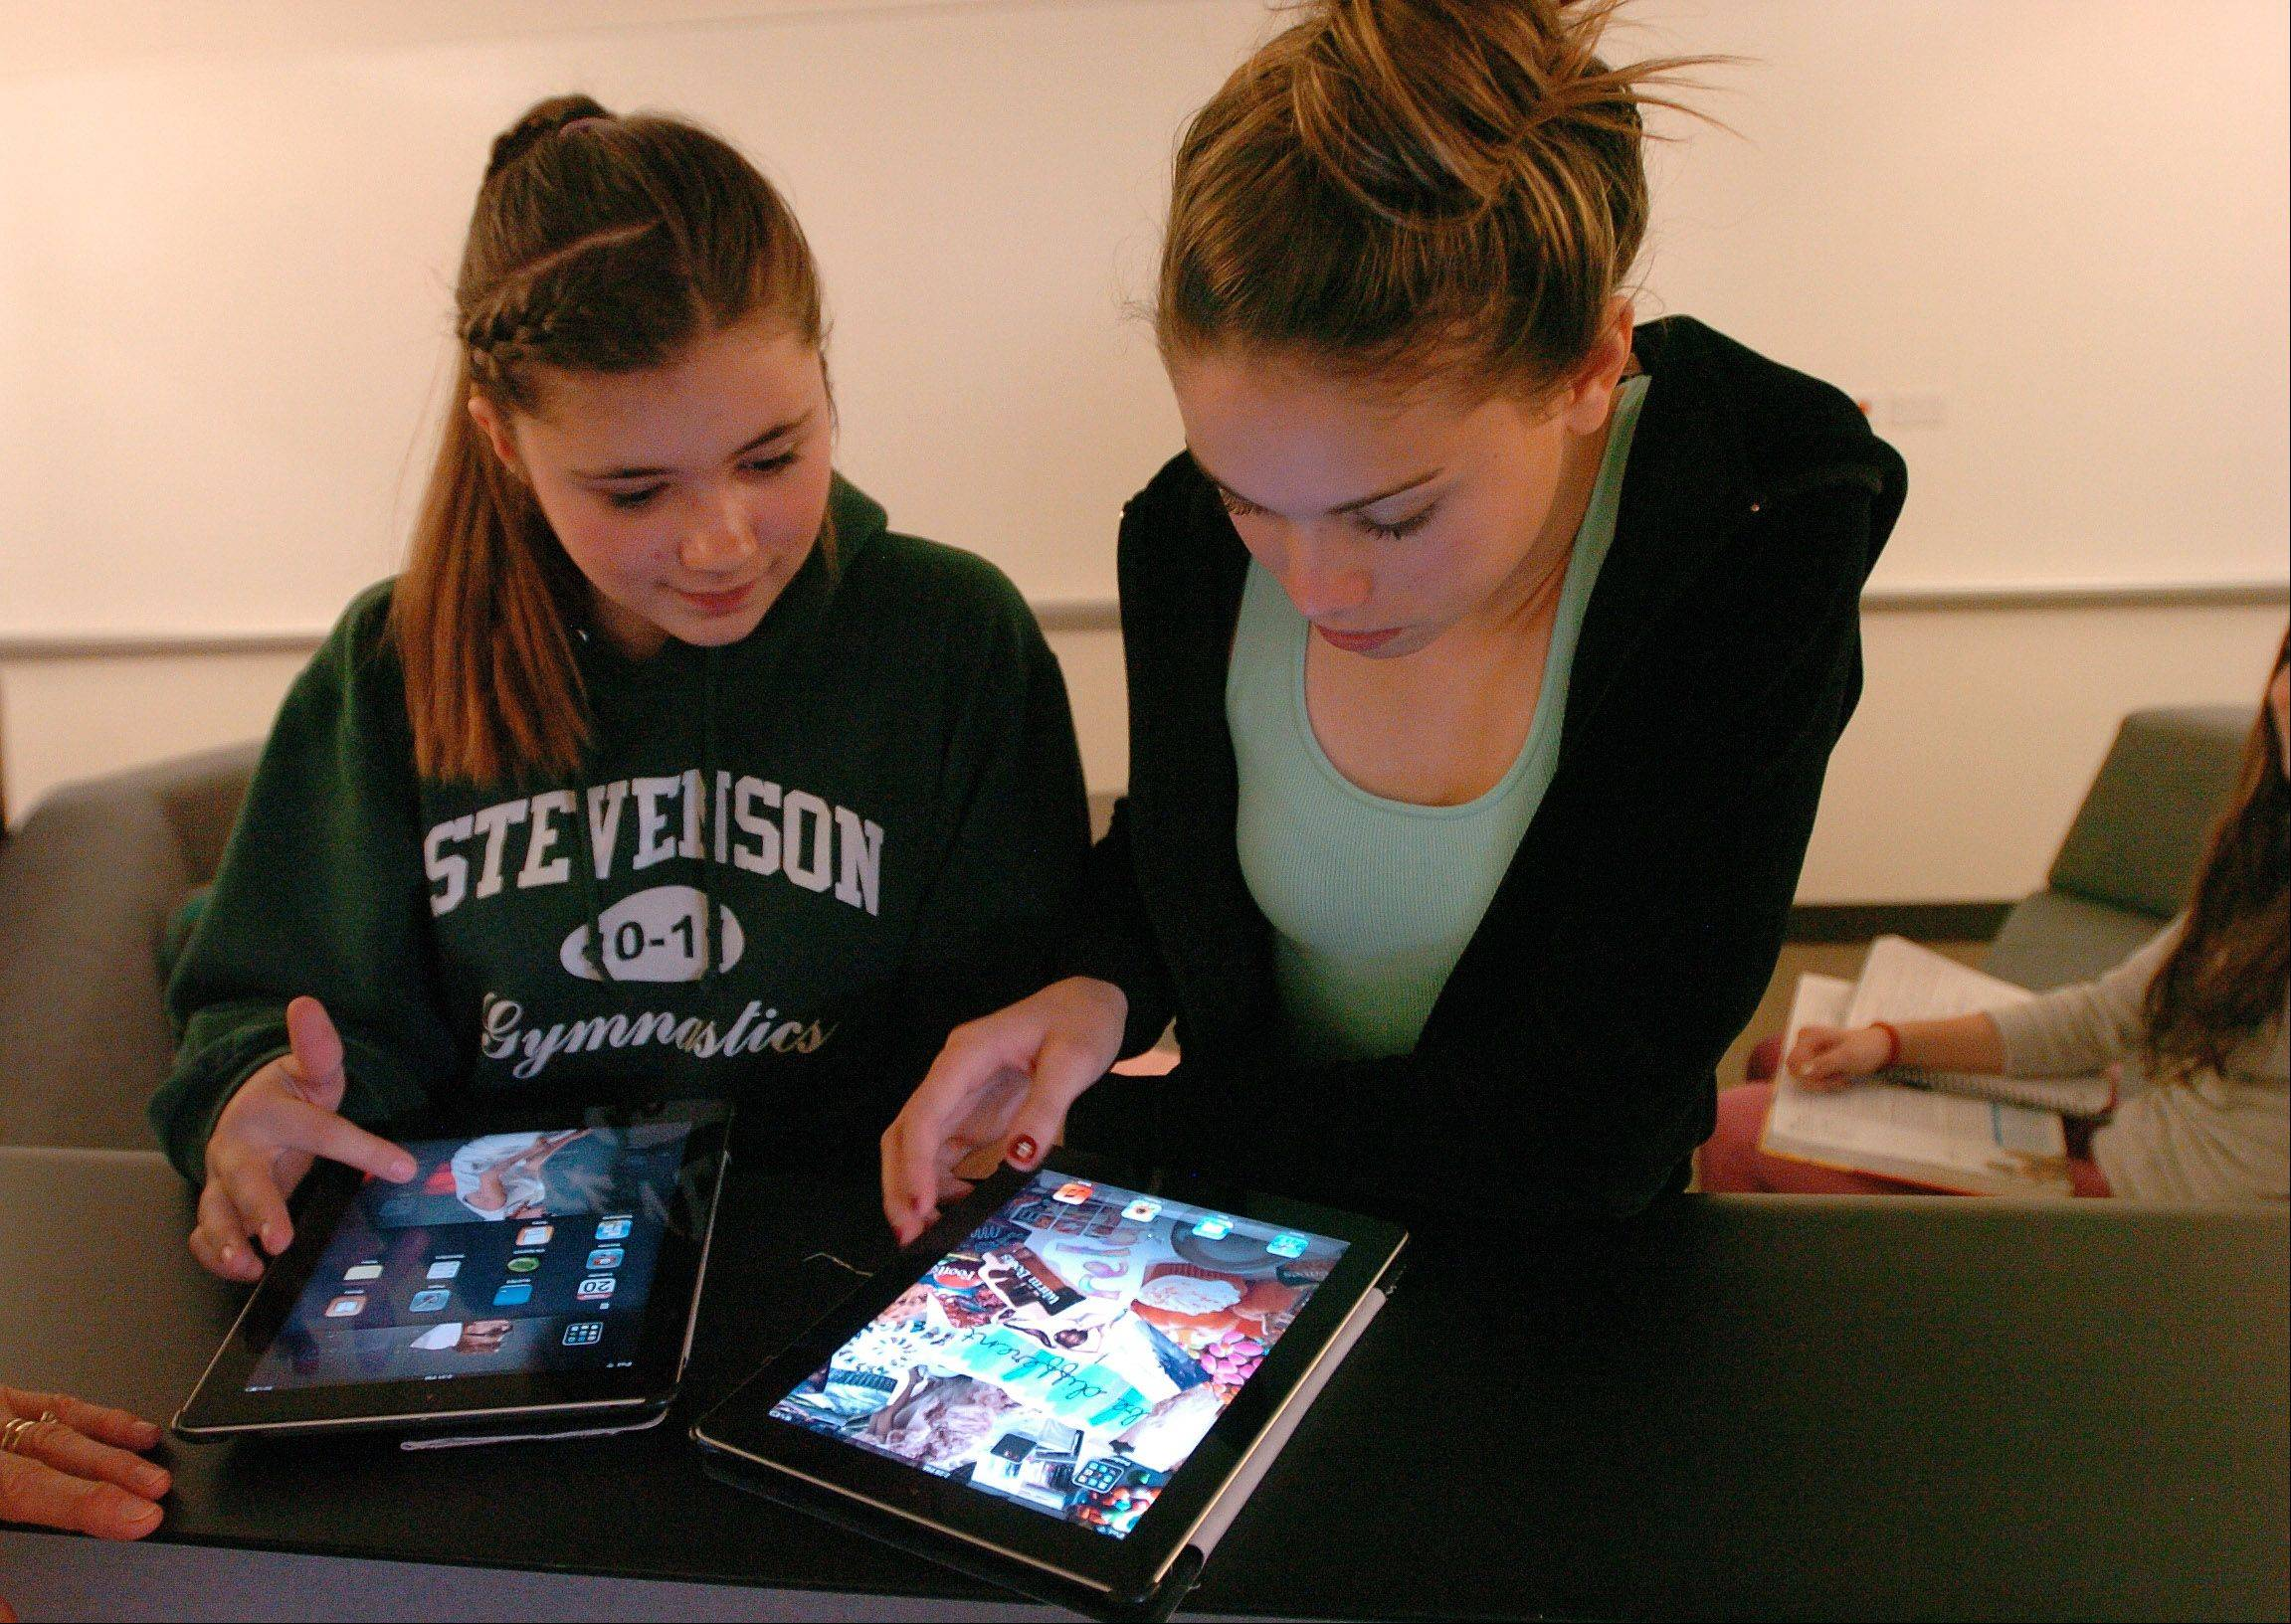 All Stevenson High students could get iPads by 2015